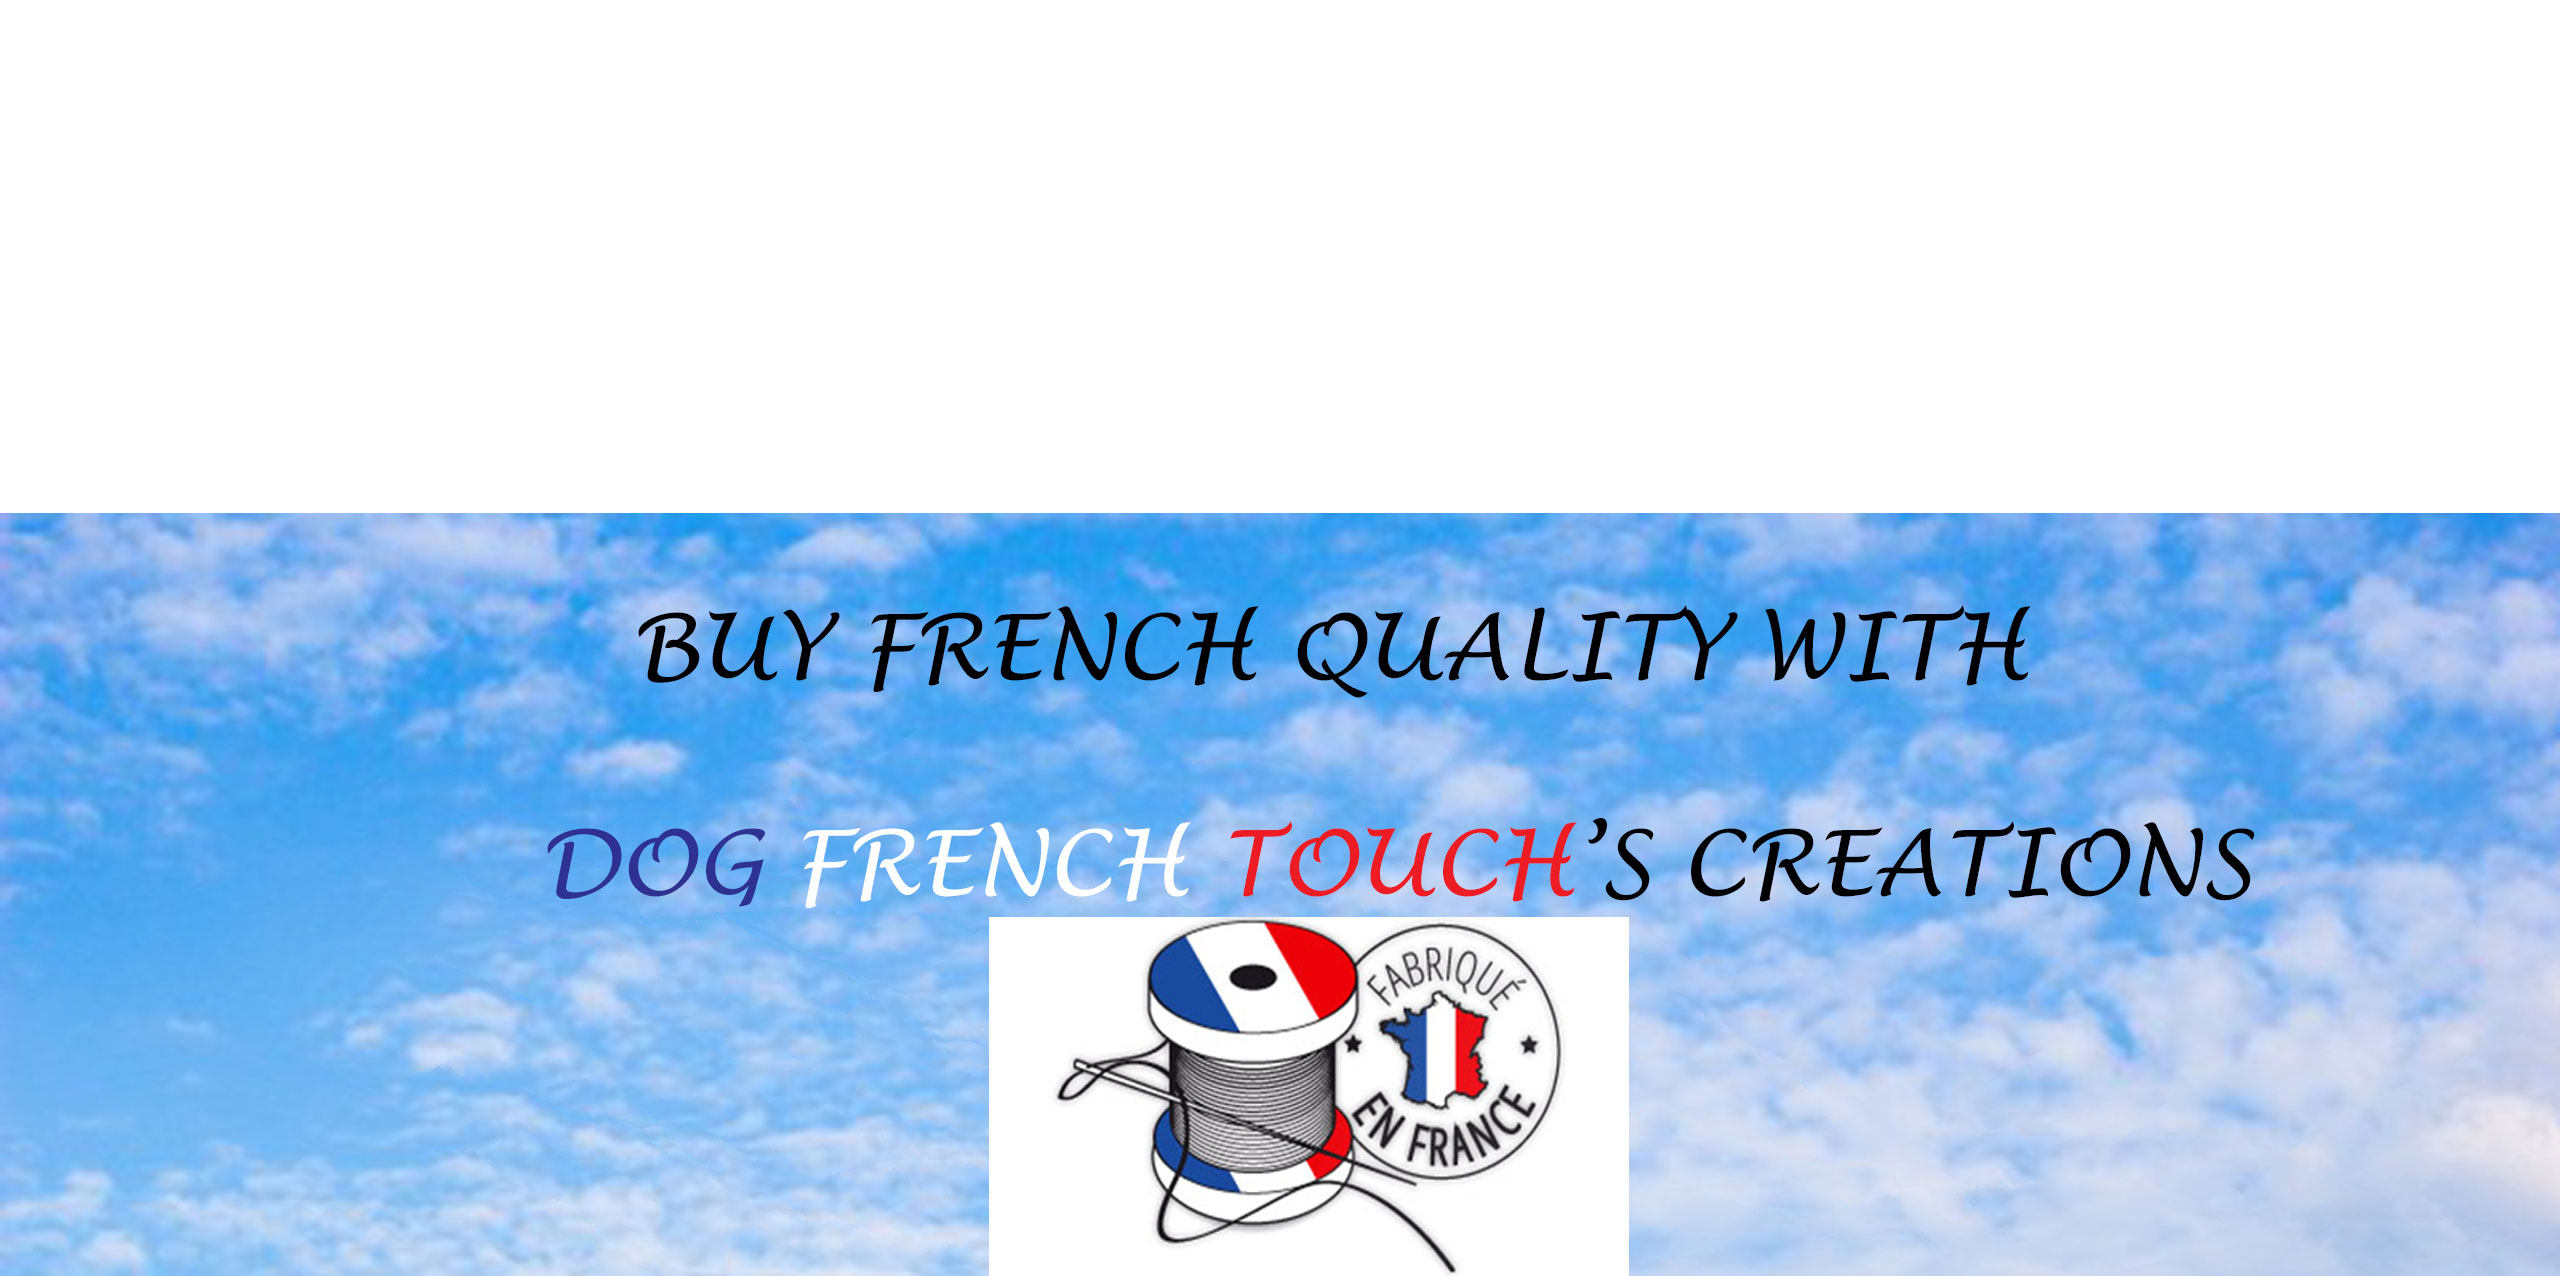 DogFrenchTouch-Buy-French-Quality-for-dogs